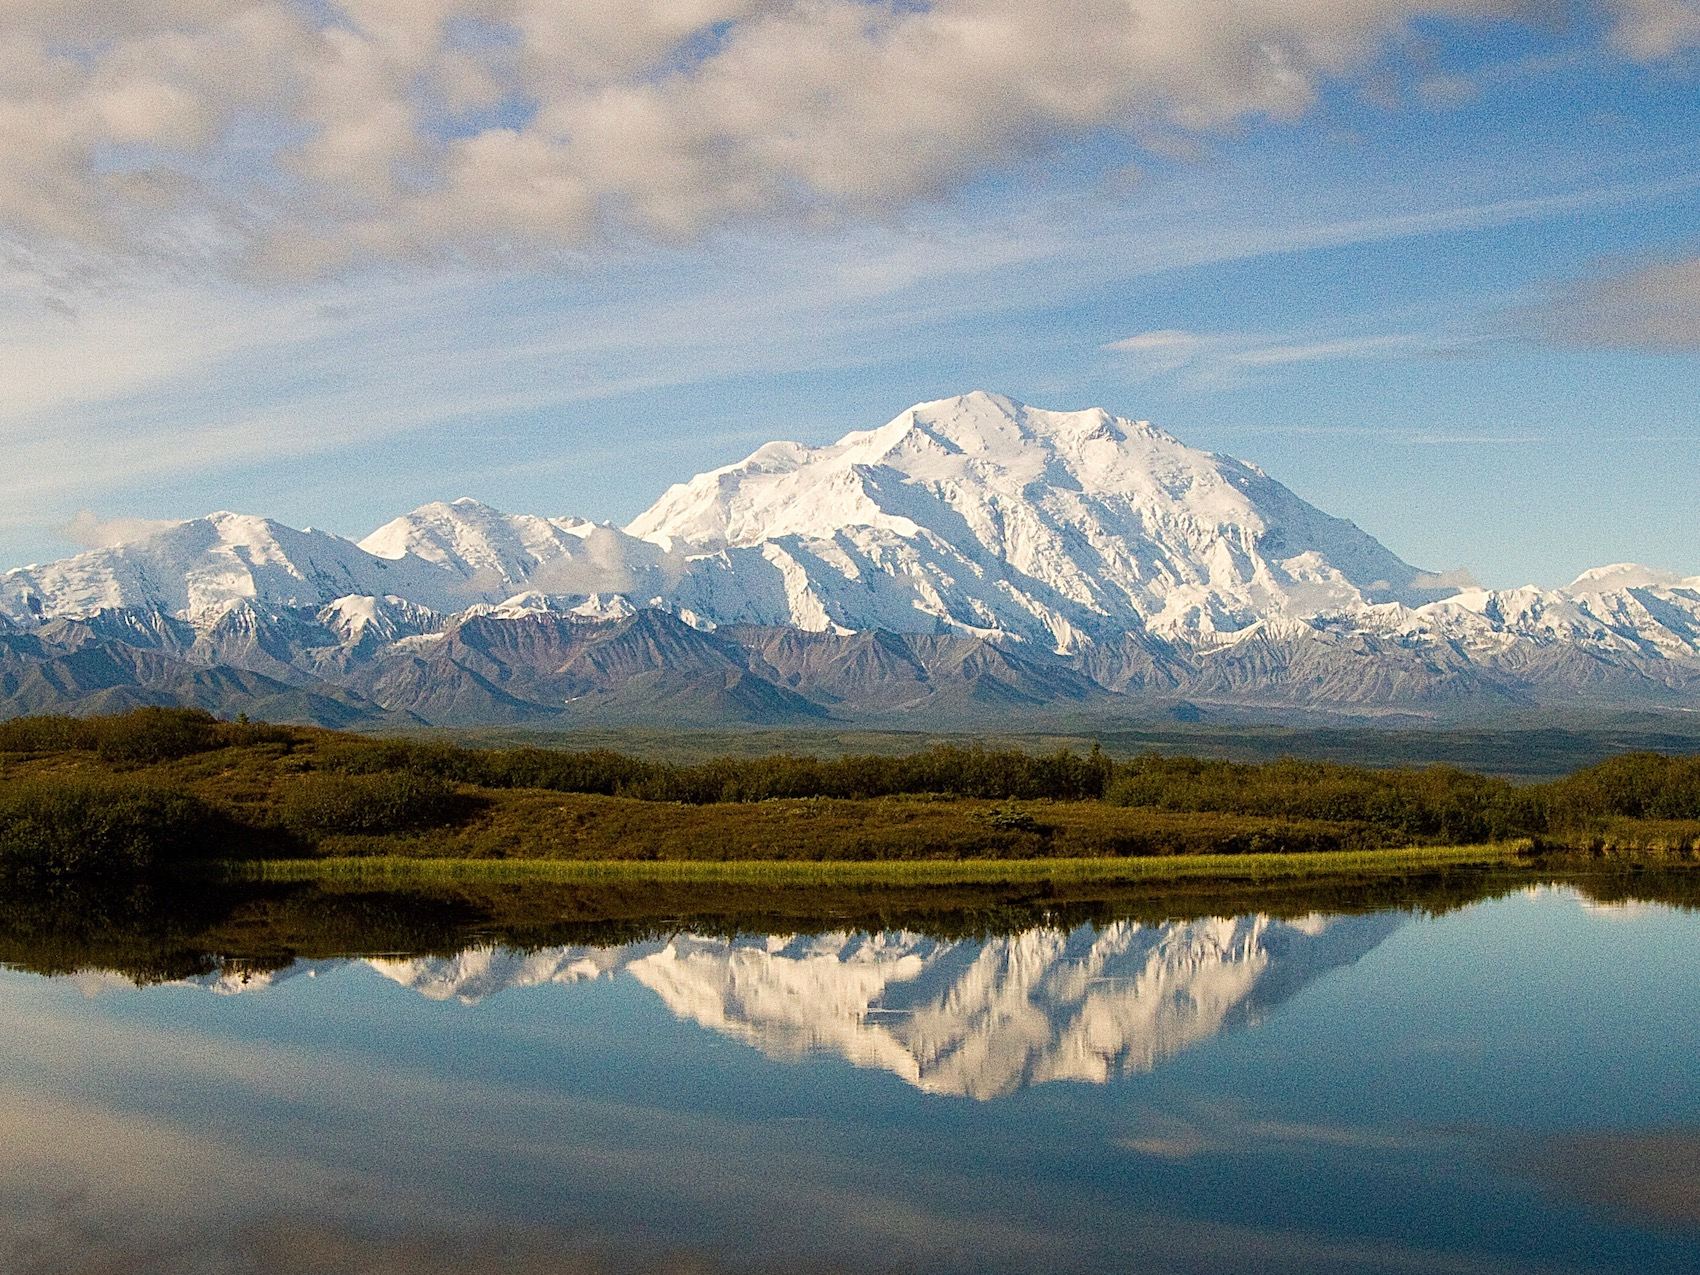 President Trump warned not to revert to non-Native name for Alaska's highest peak